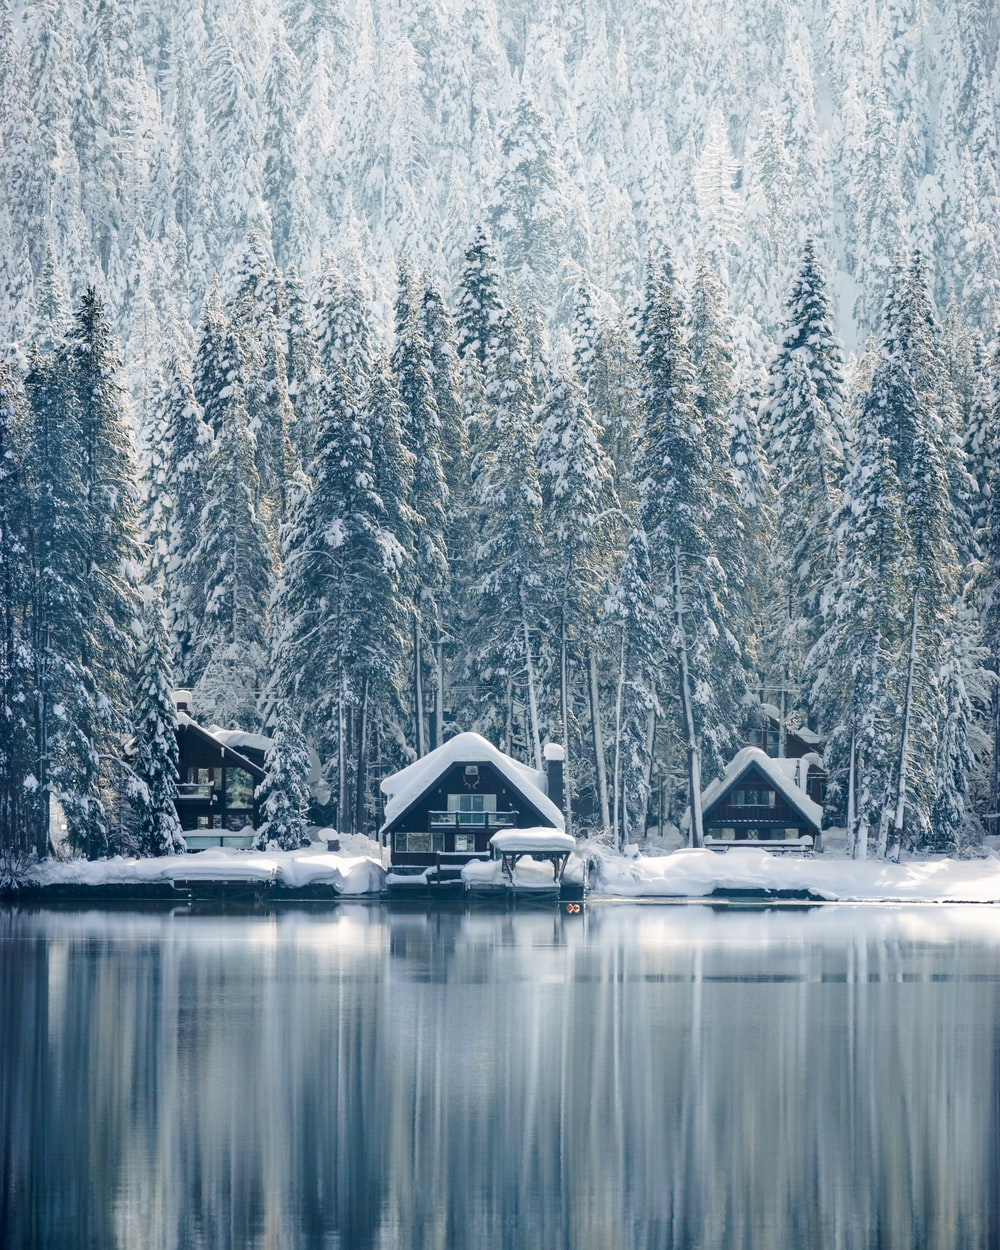 houses covered with snow near trees